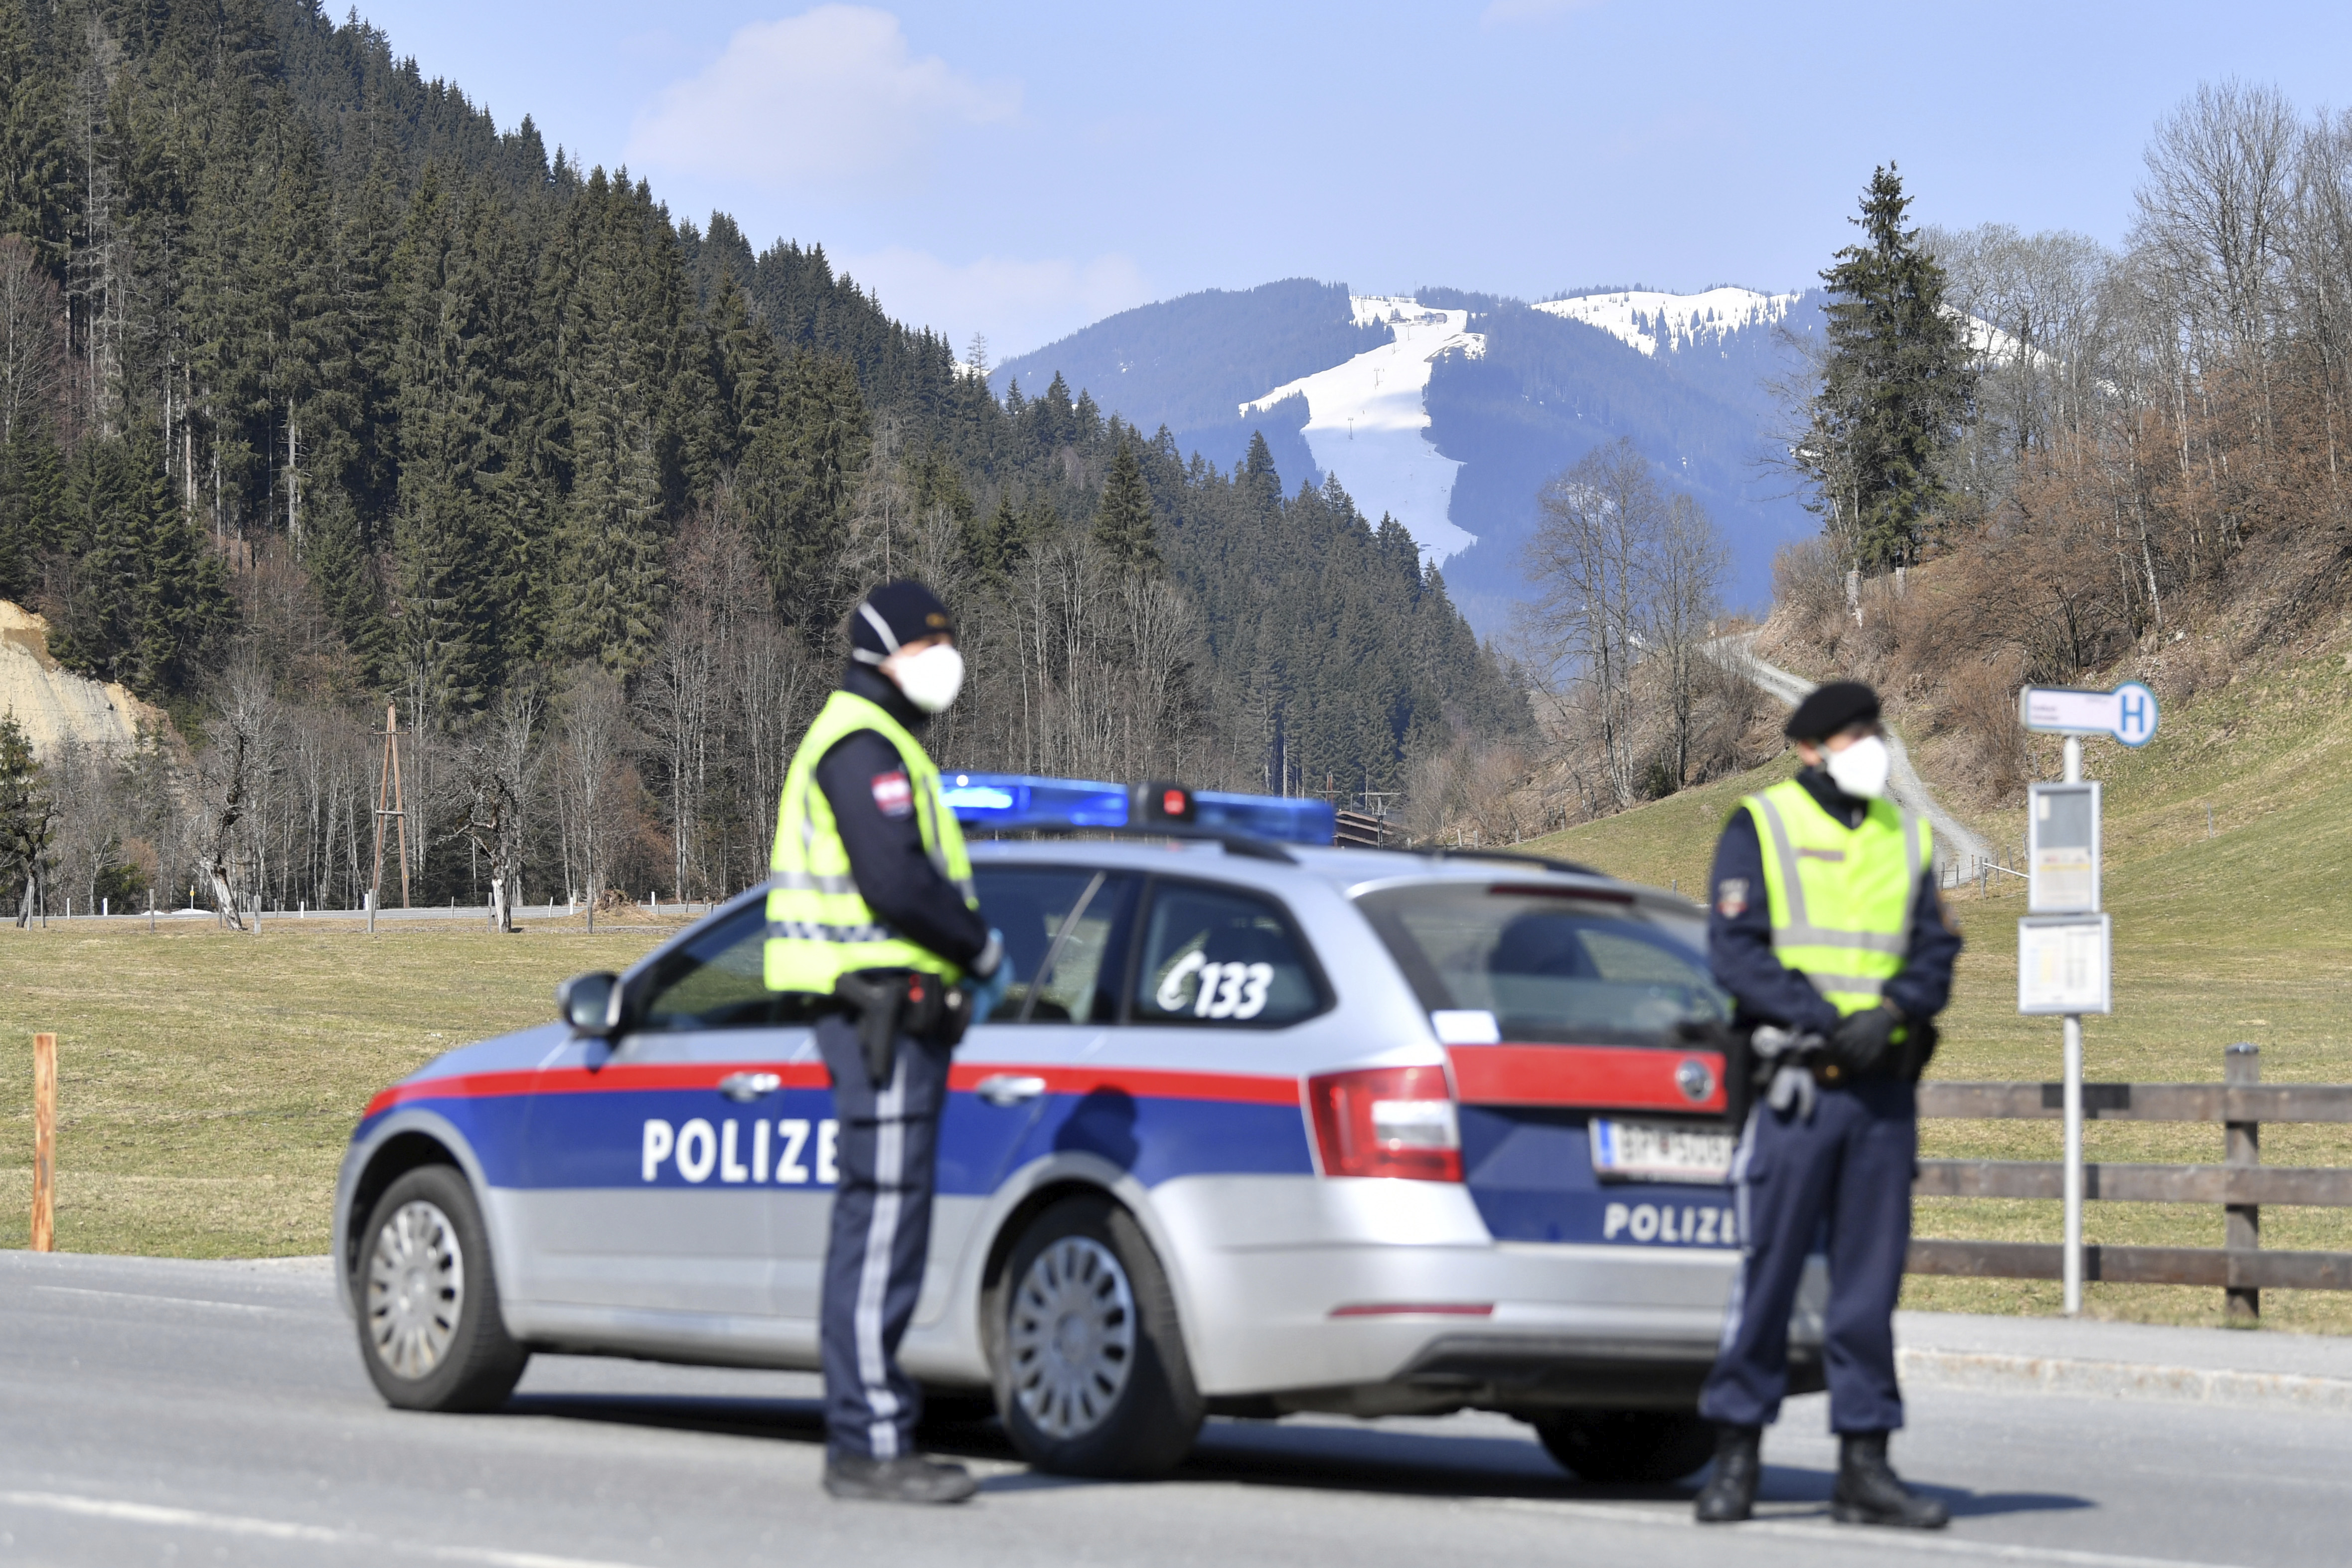 Police officers blog the road to the skying resort Saalbach Hinterglemm, Austrian province of Salzburg, Friday, April 3, 2020 after the city was quarantined.The Austrian government has moved to restrict freedom of movement for people, in an effort to slow the onset of the COVID-19 coronavirus. (AP Photo/Kerstin Joensson)